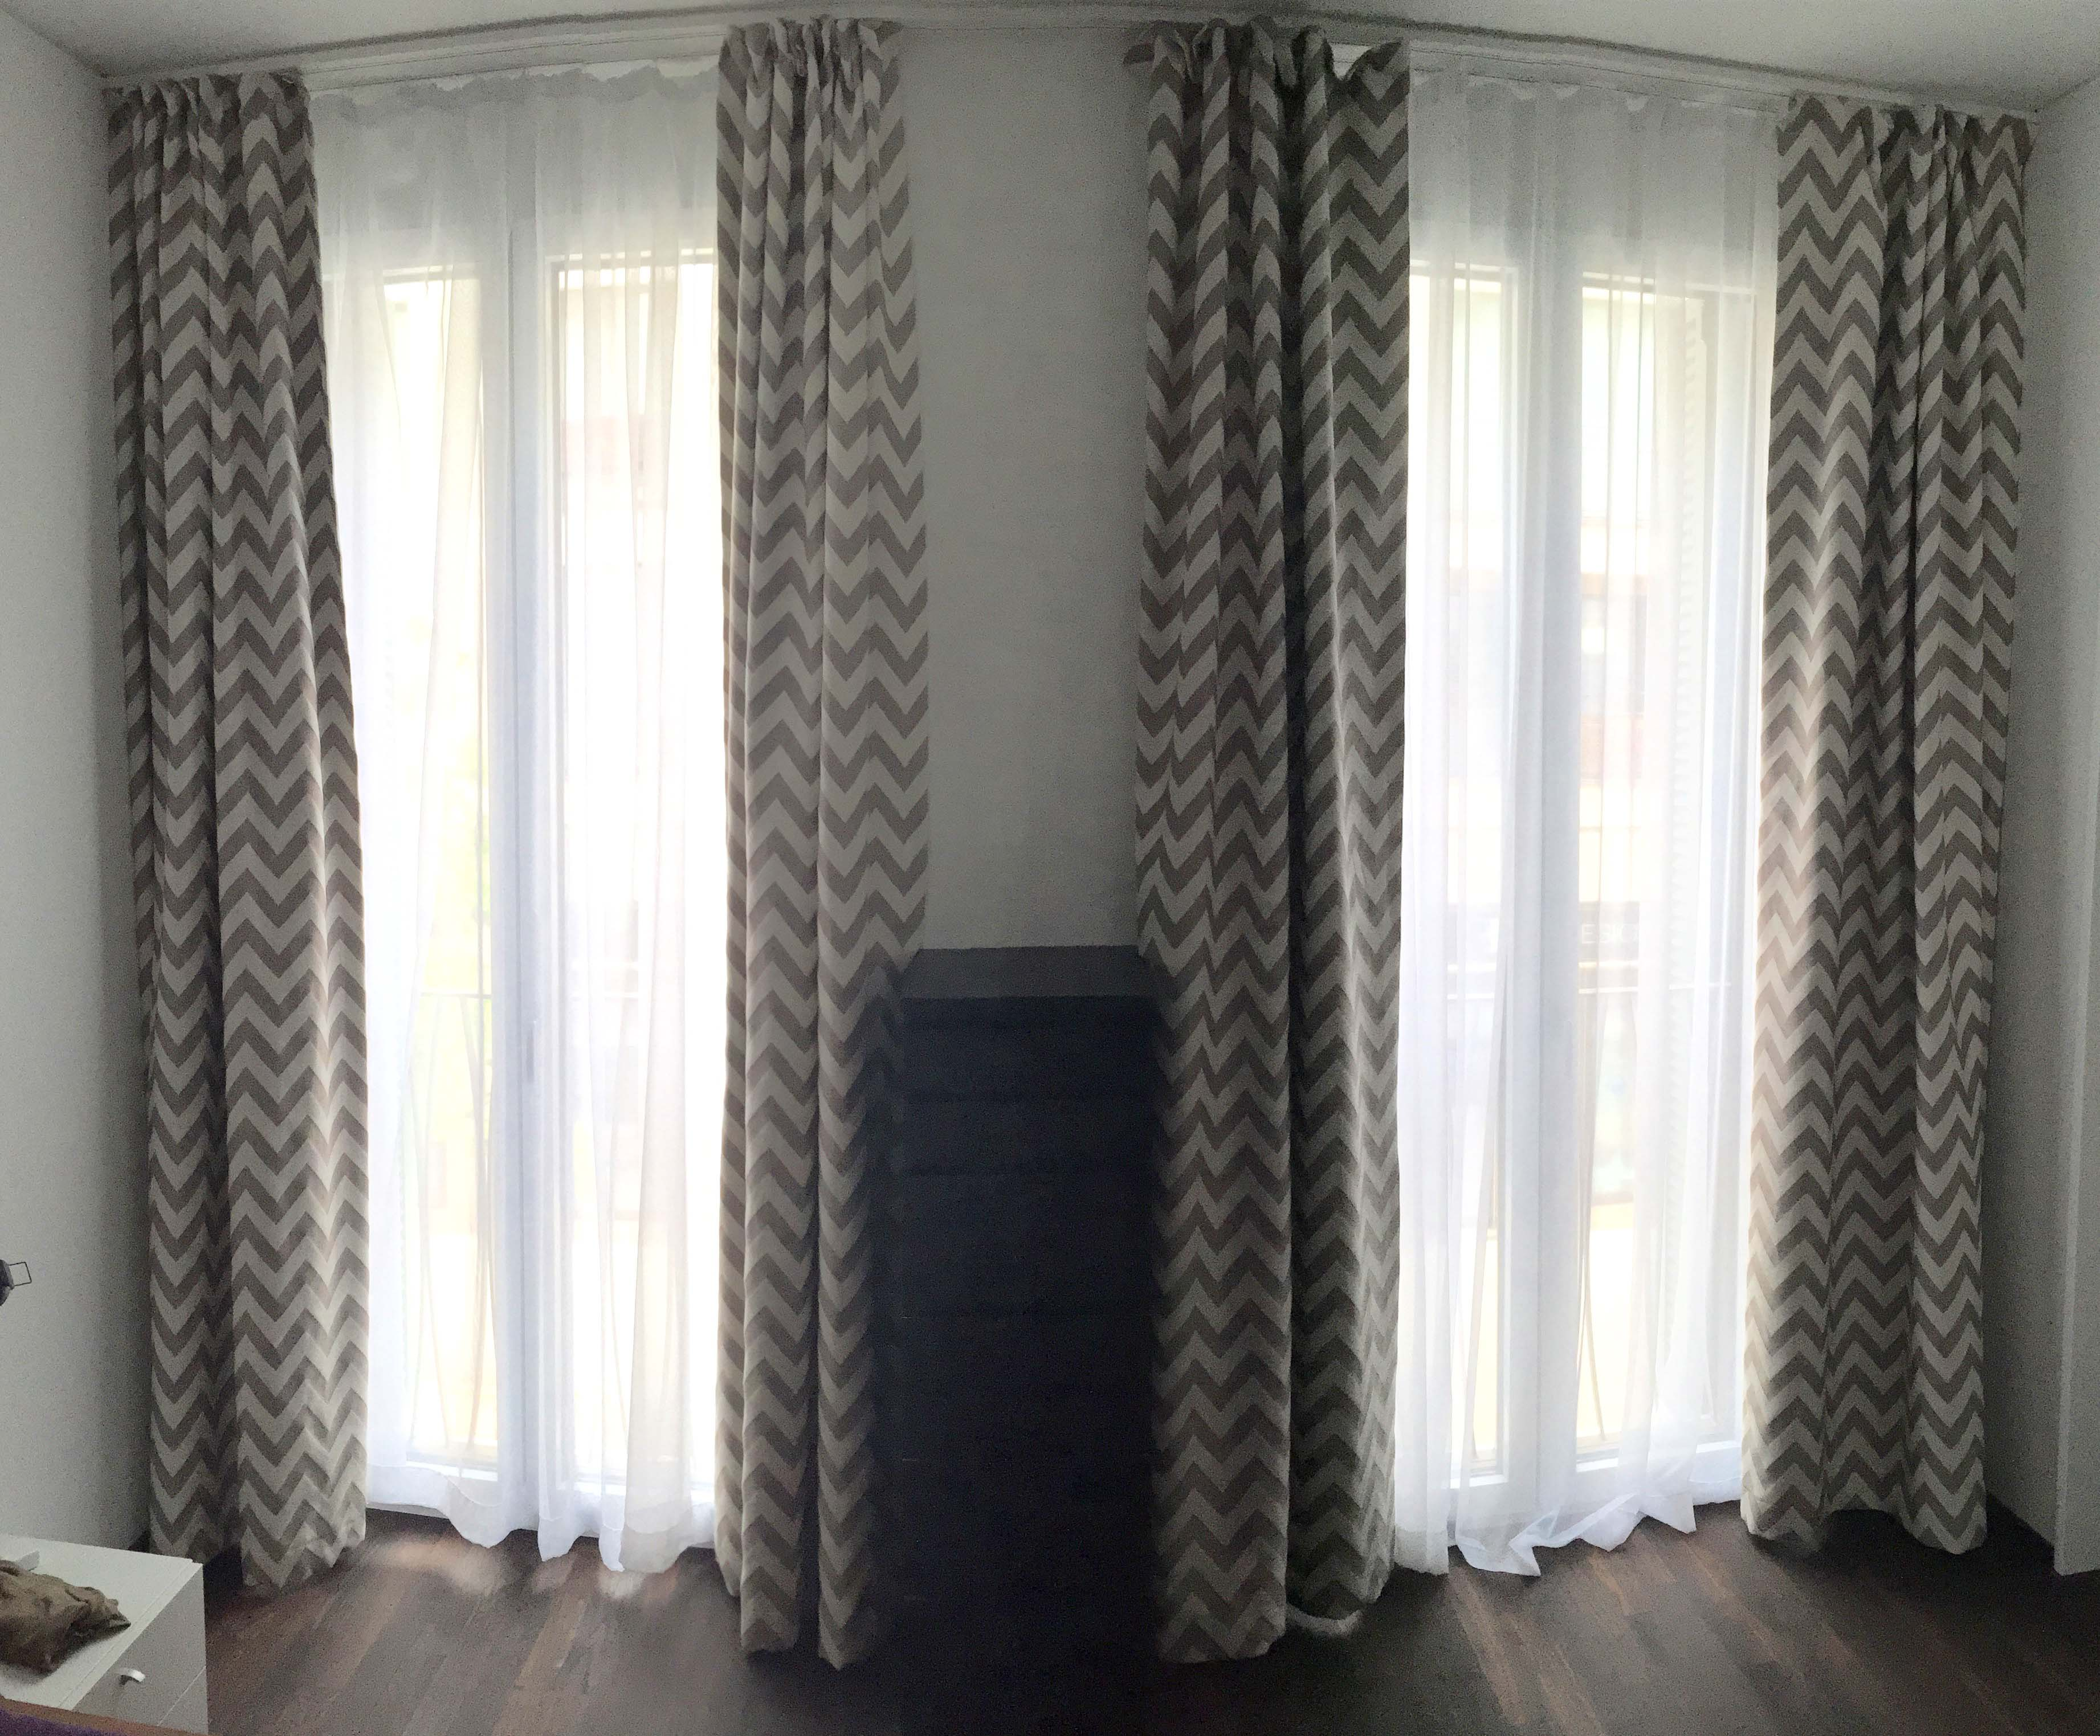 over curtain white vertical blinds most shades curtains gallery ikea well table in the as and floral patterned combined ideas modern images grommet with wonderful red twin interior window seen lamp mixed